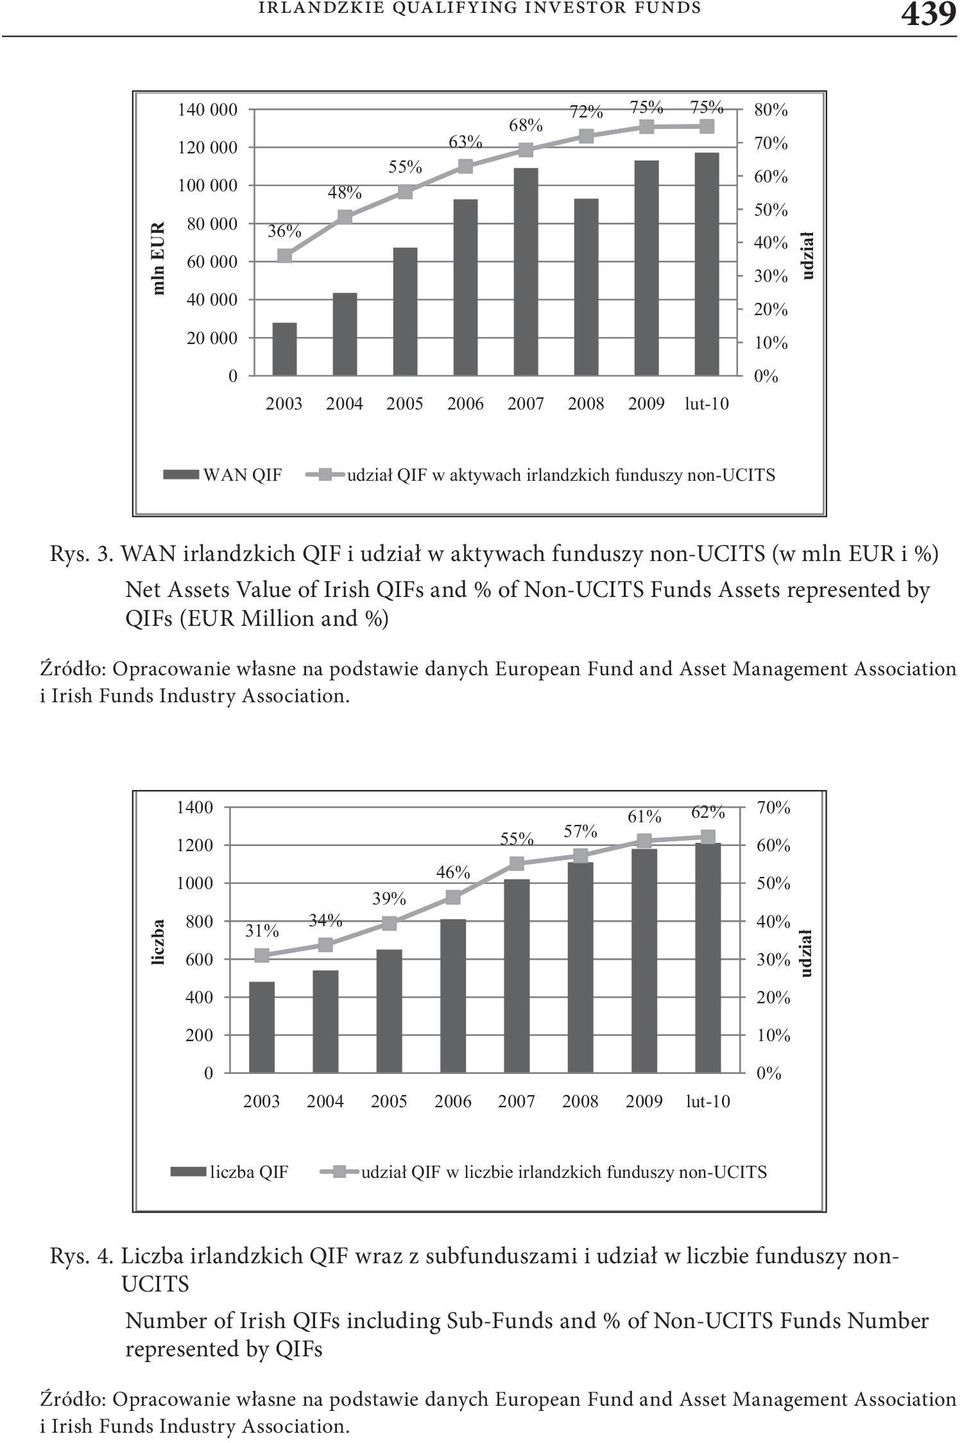 WAN irlandzkich QIF i udział w aktywach funduszy non-ucits (w mln EUR i %) Net Assets Value of Irish QIFs and % of Non-UCITS Funds Assets represented by QIFs (EUR Million and %) Źródło: Opracowanie